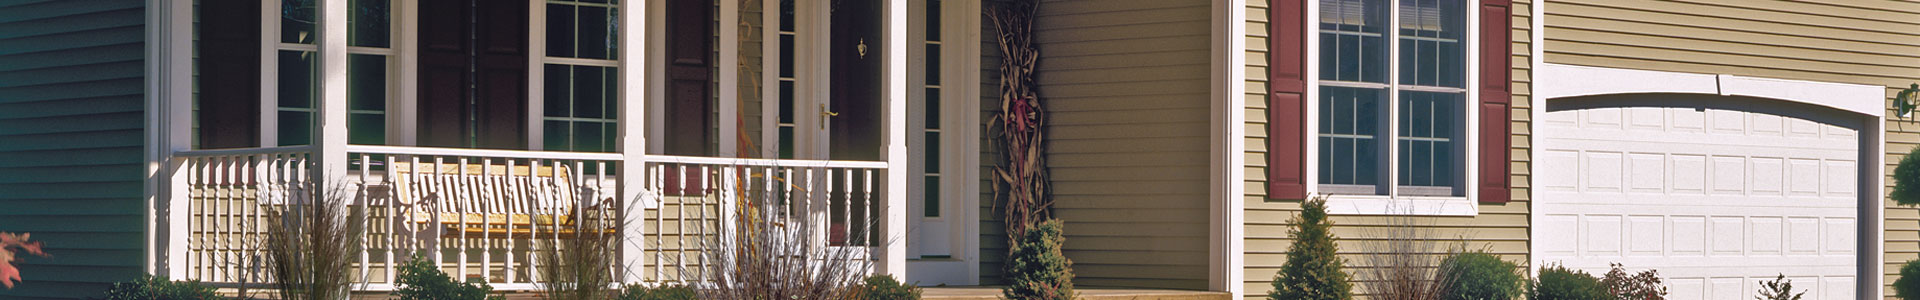 siding for residential projects